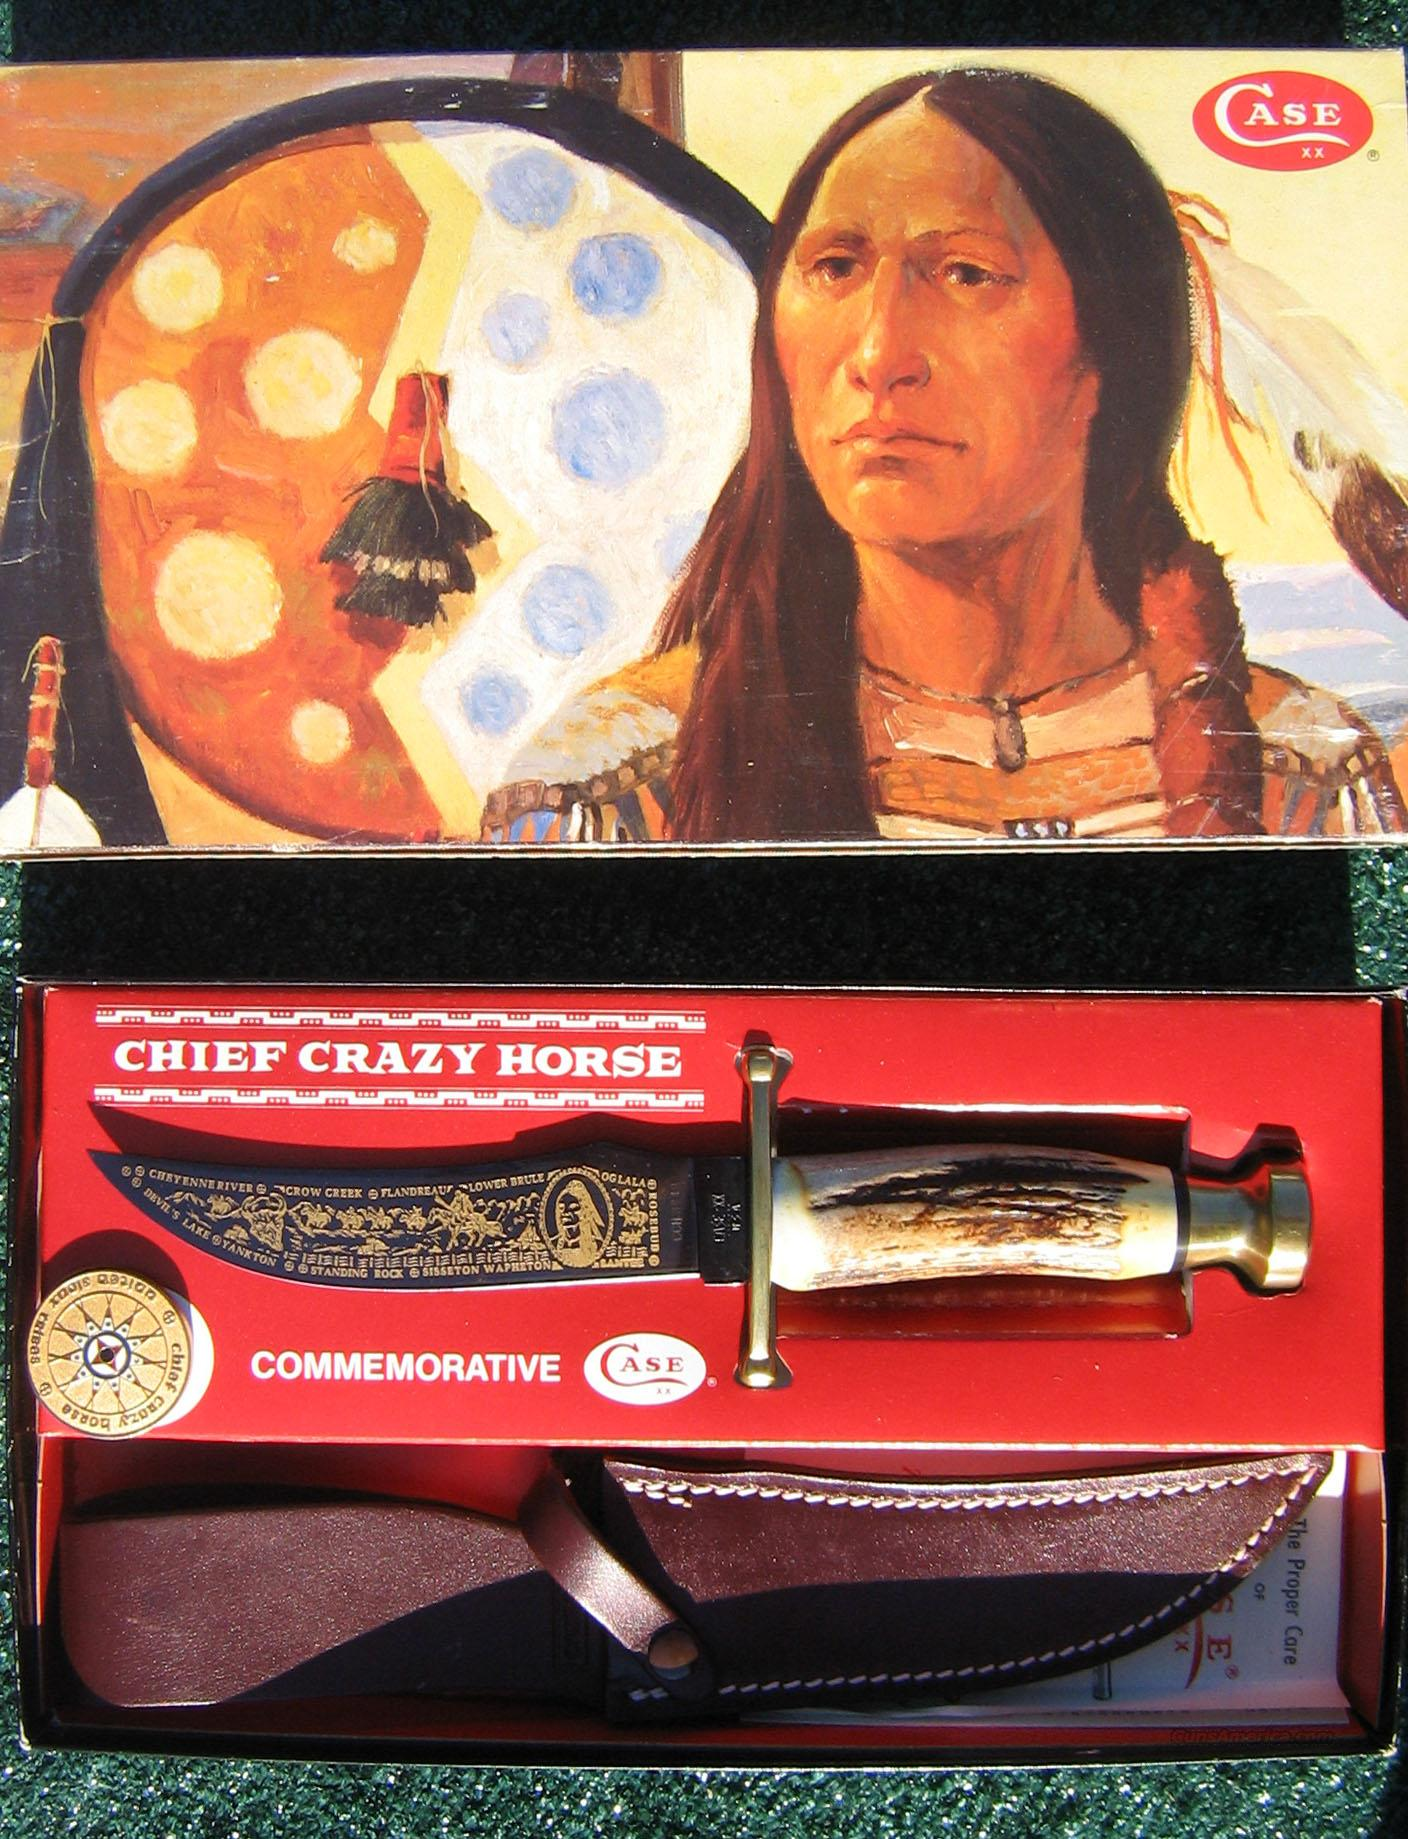 Case Chief Crazy Horse Commemorative Knife   Non-Guns > Knives/Swords > Knives > Fixed Blade > Hand Made